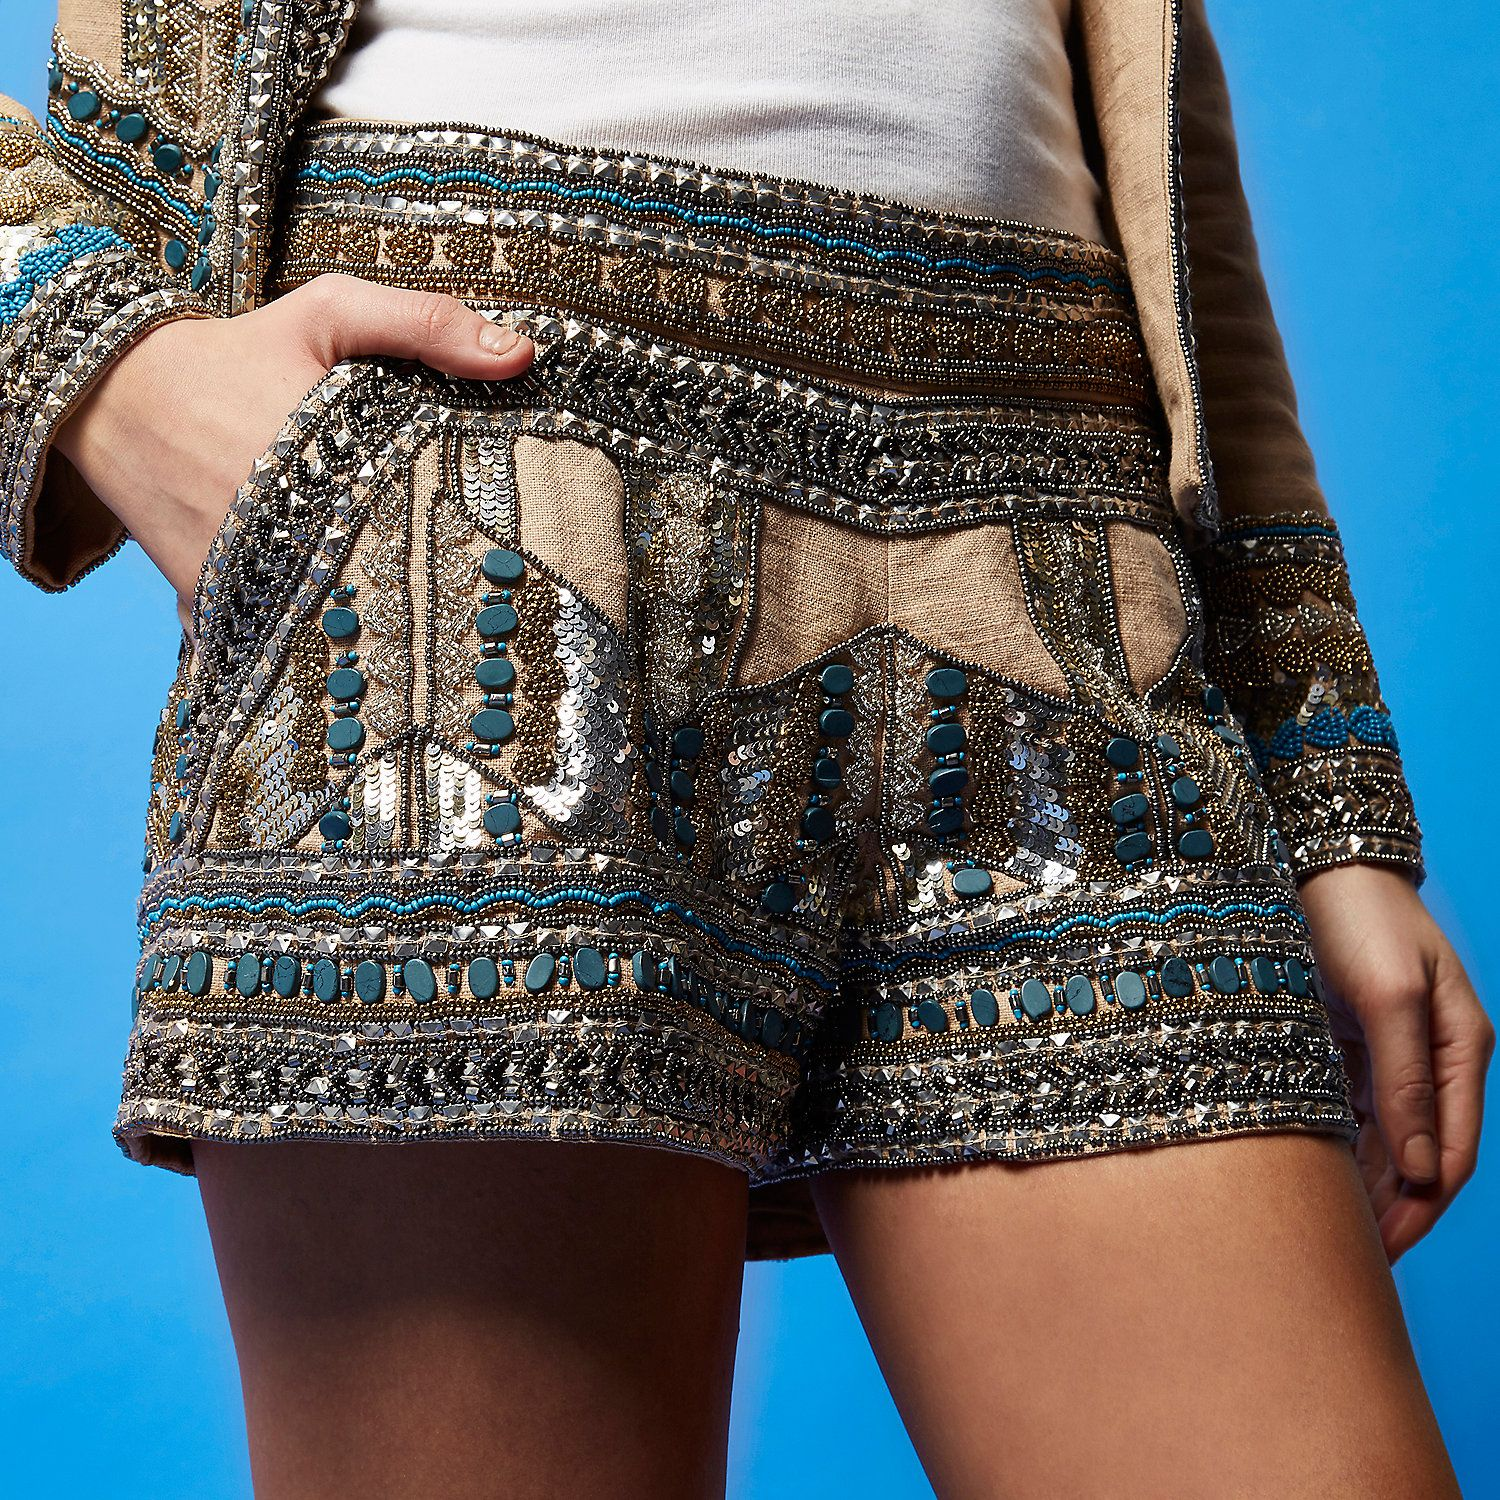 clearance sale really comfortable best price heavily embellished shorts RI studio River Island SS16 680521_main ...